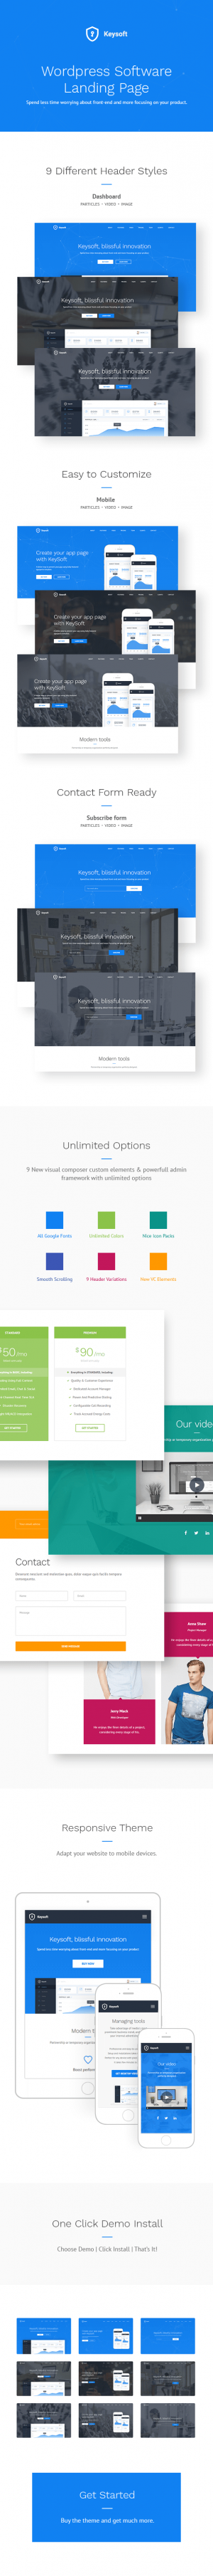 KeySoft – WordPress Software Landing Page